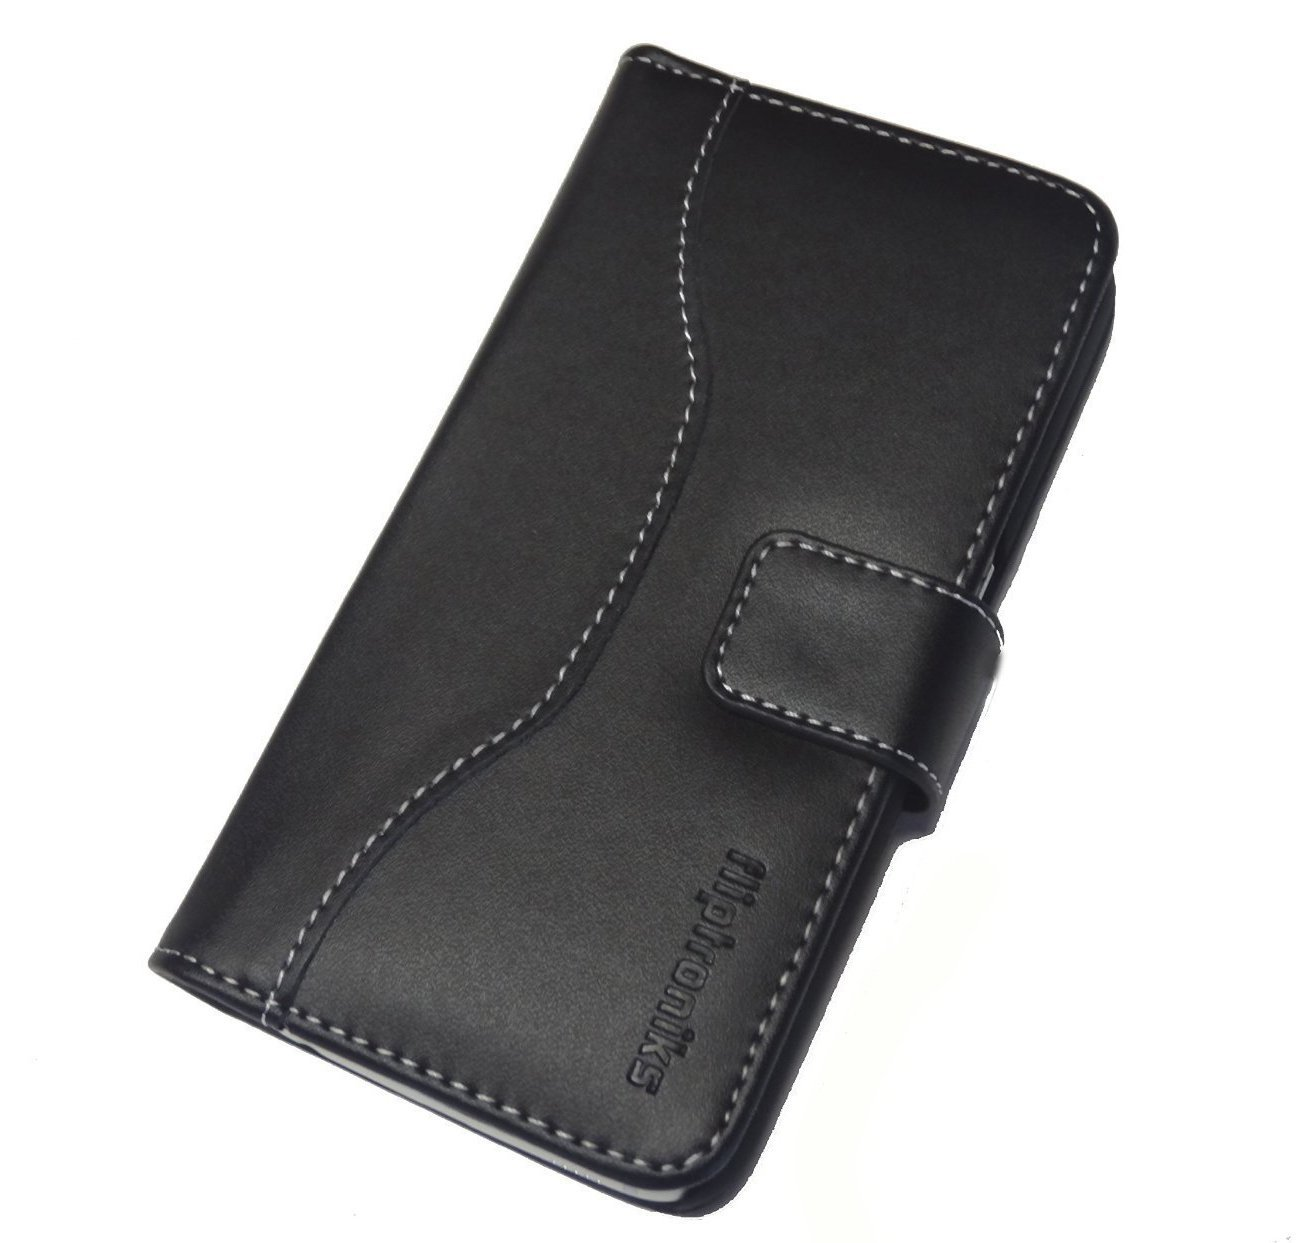 Fliptroniks Samsung Galaxy S6 Black Real Leather Wallet Case